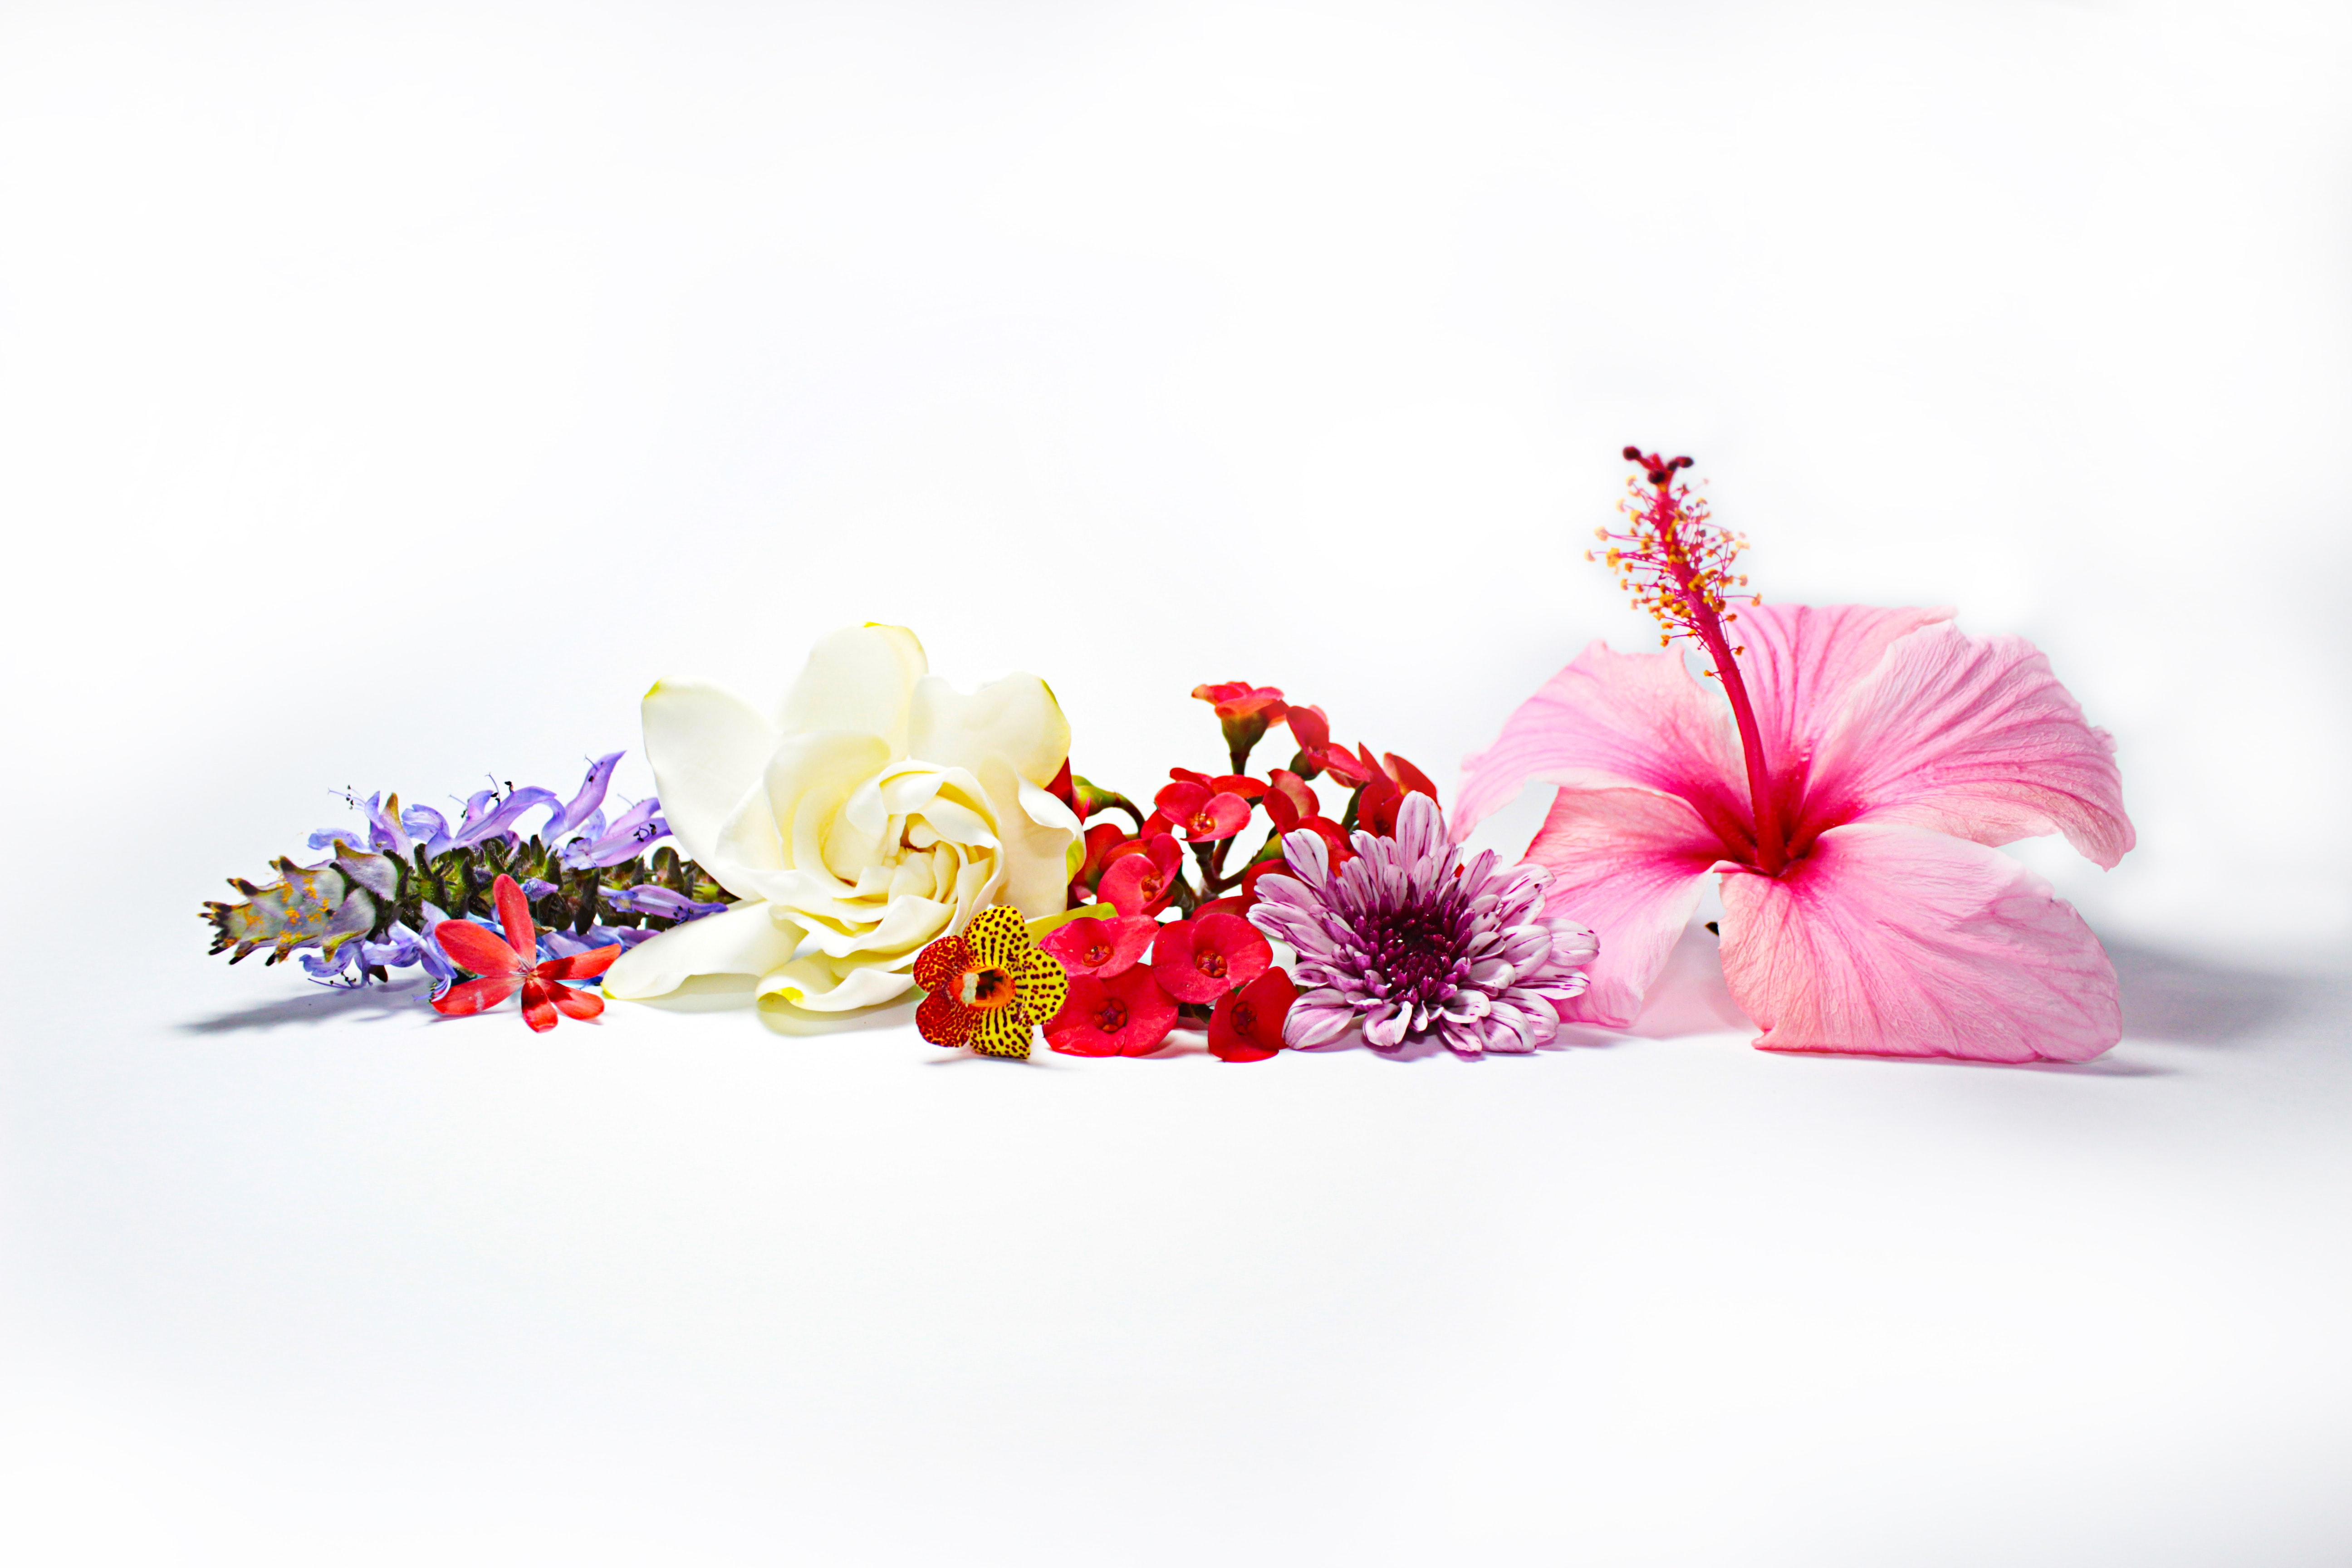 assorted-type of flowers in white surface